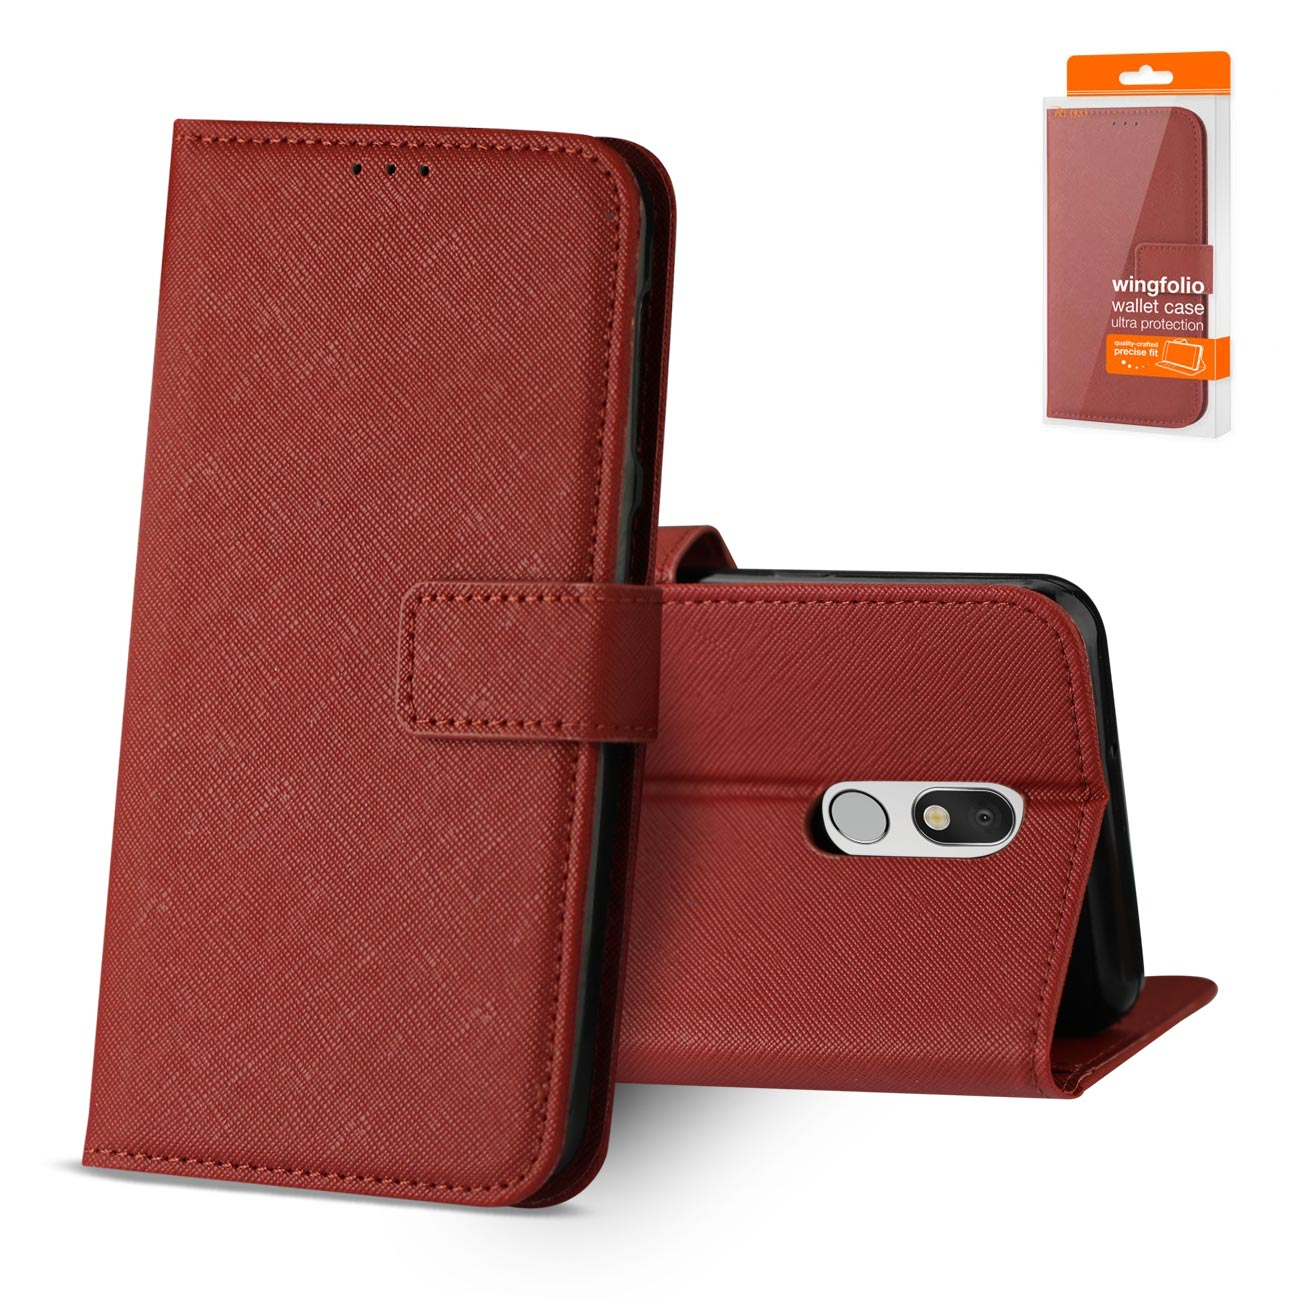 LG STYLO 5 3-In-1 Wallet Case In RED